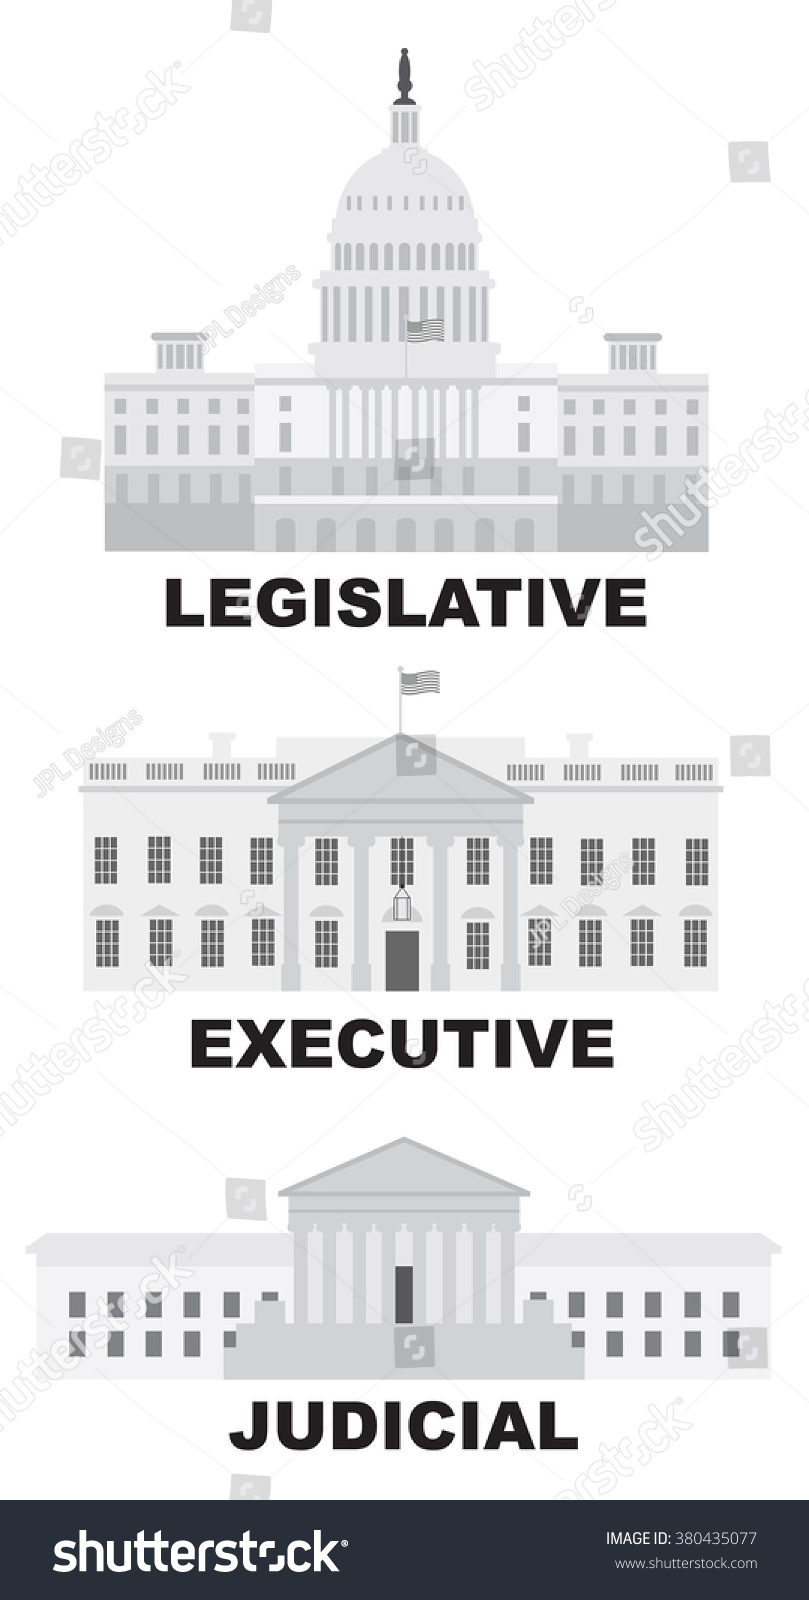 executive and legislative Legislative, executive and judicial functions separation of powers, a term coined by french political enlightenment thinker baron de montesquieu is a model for the governance of democratic states there are three distinct activities in every government through which the will of the people are expressed.